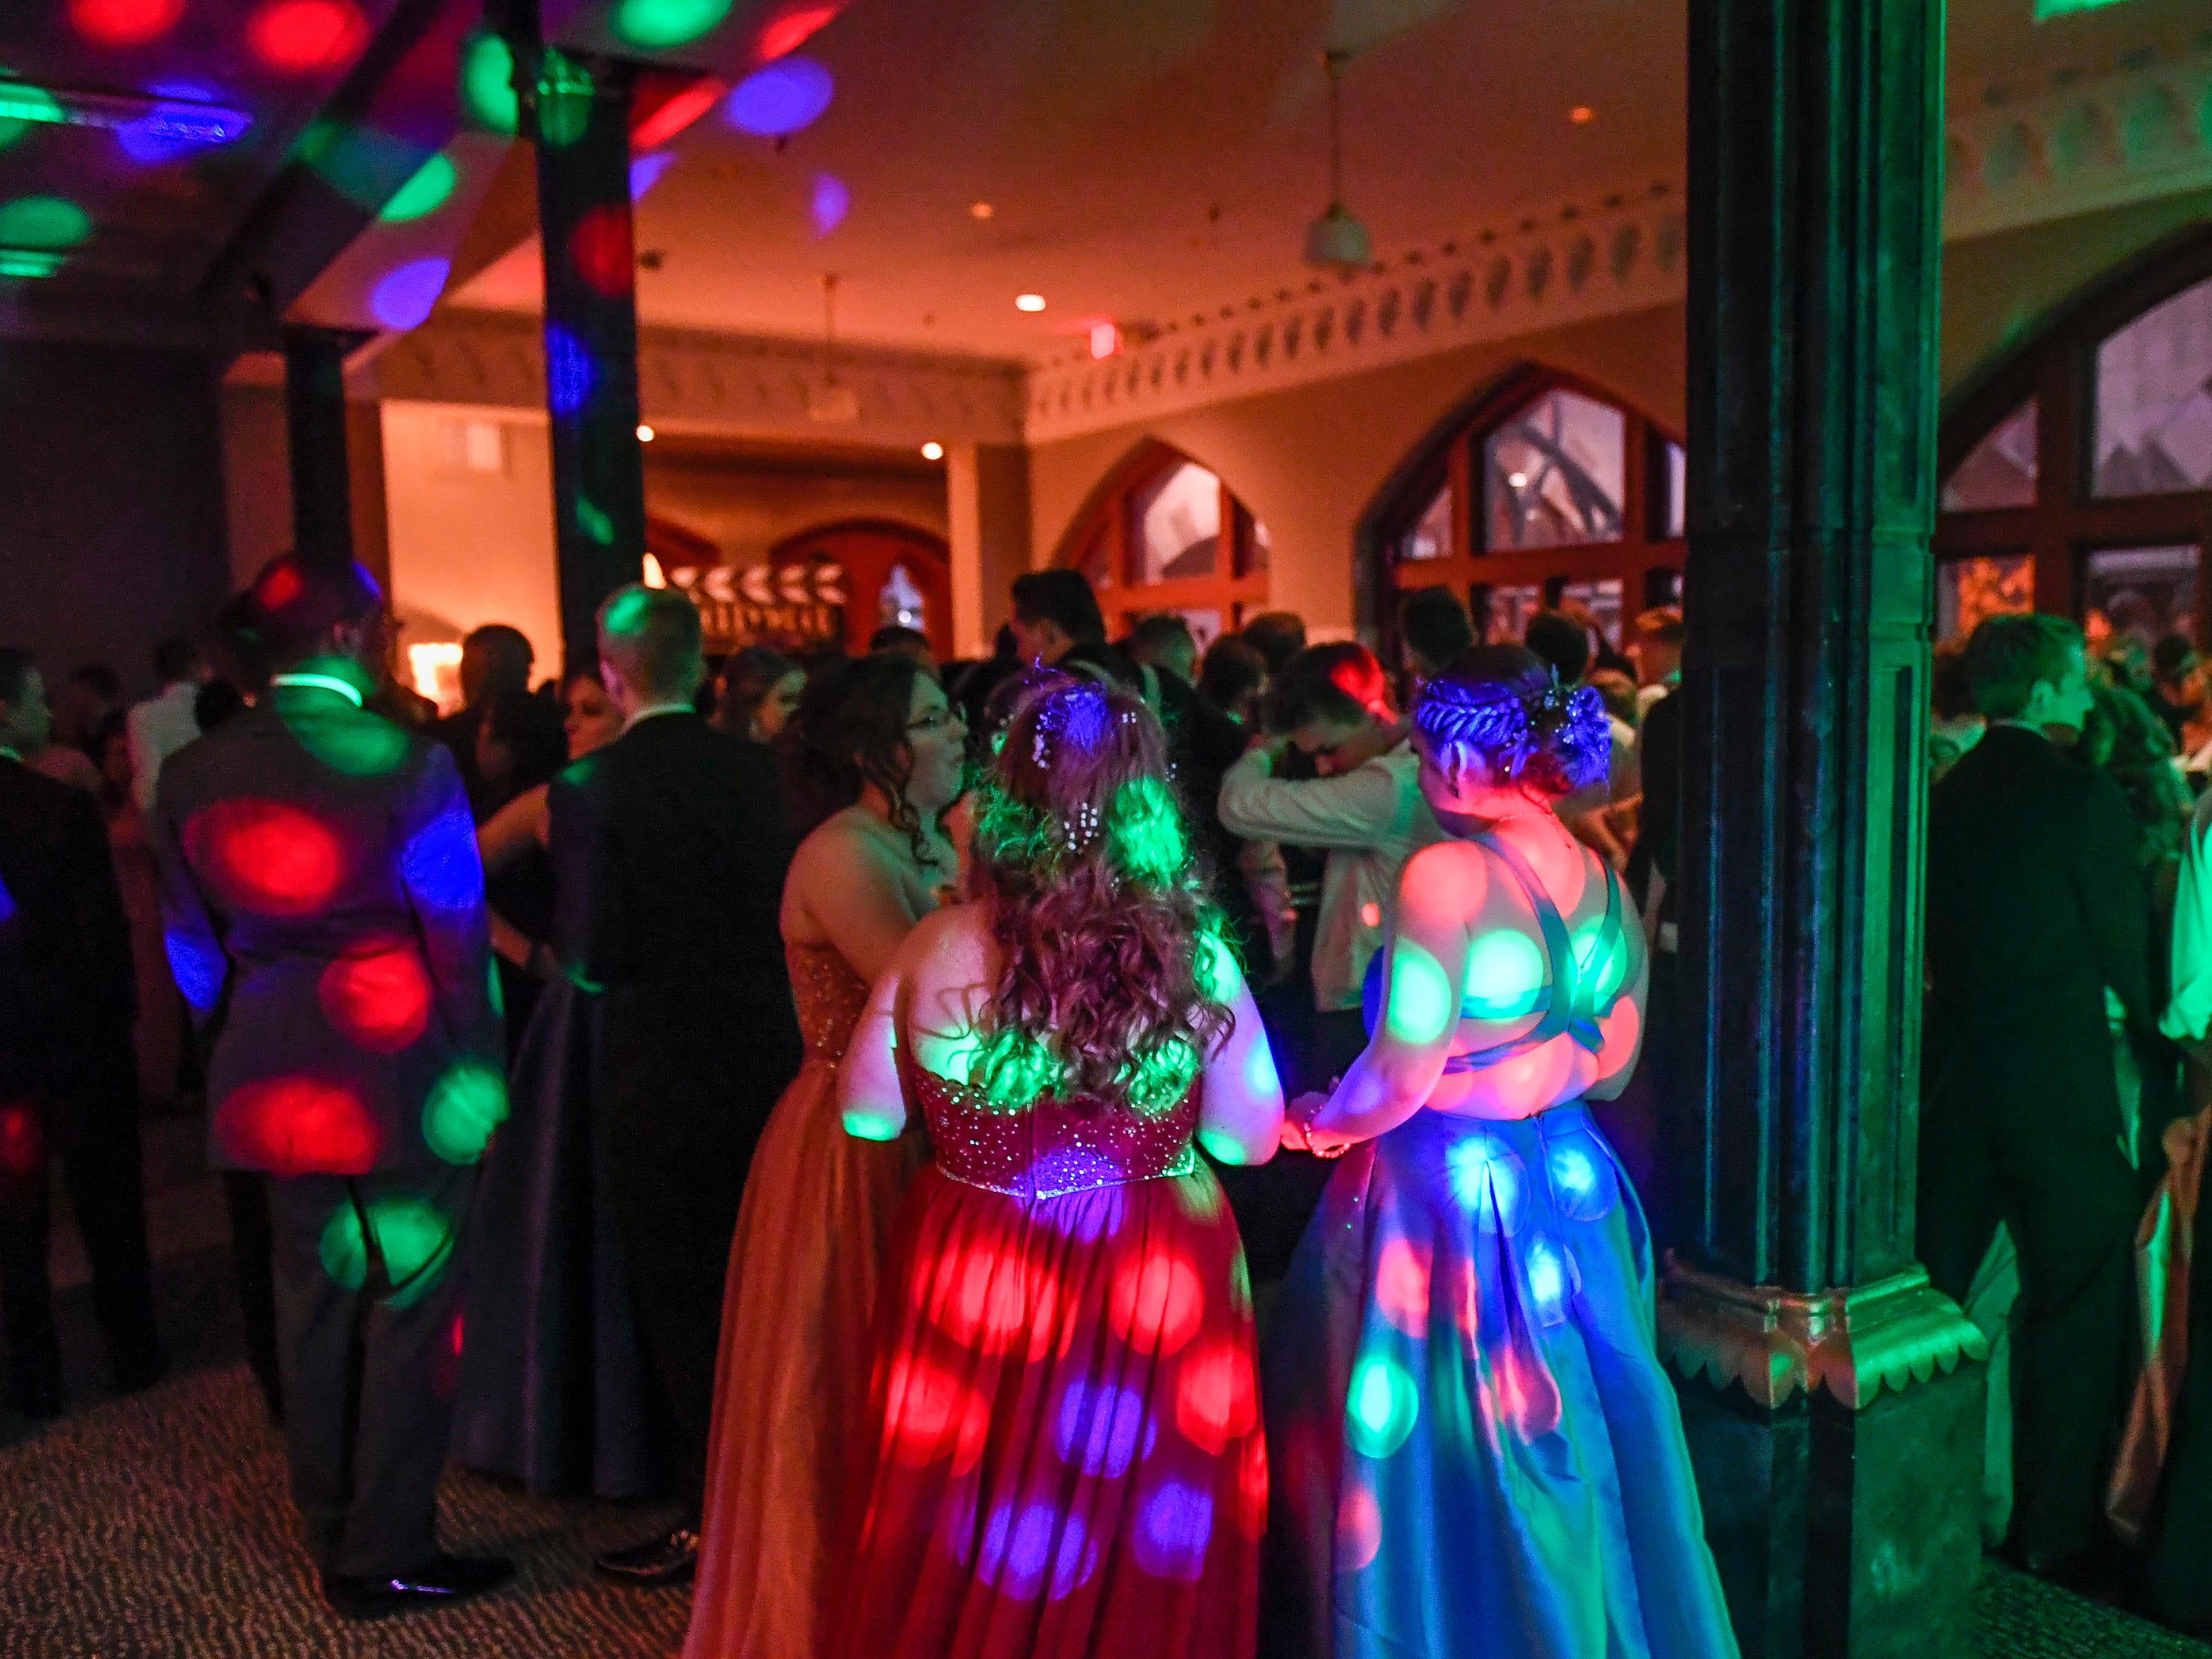 The North High School Prom held at the Old Post Office in downtown Evansville Saturday, April 13, 2019.